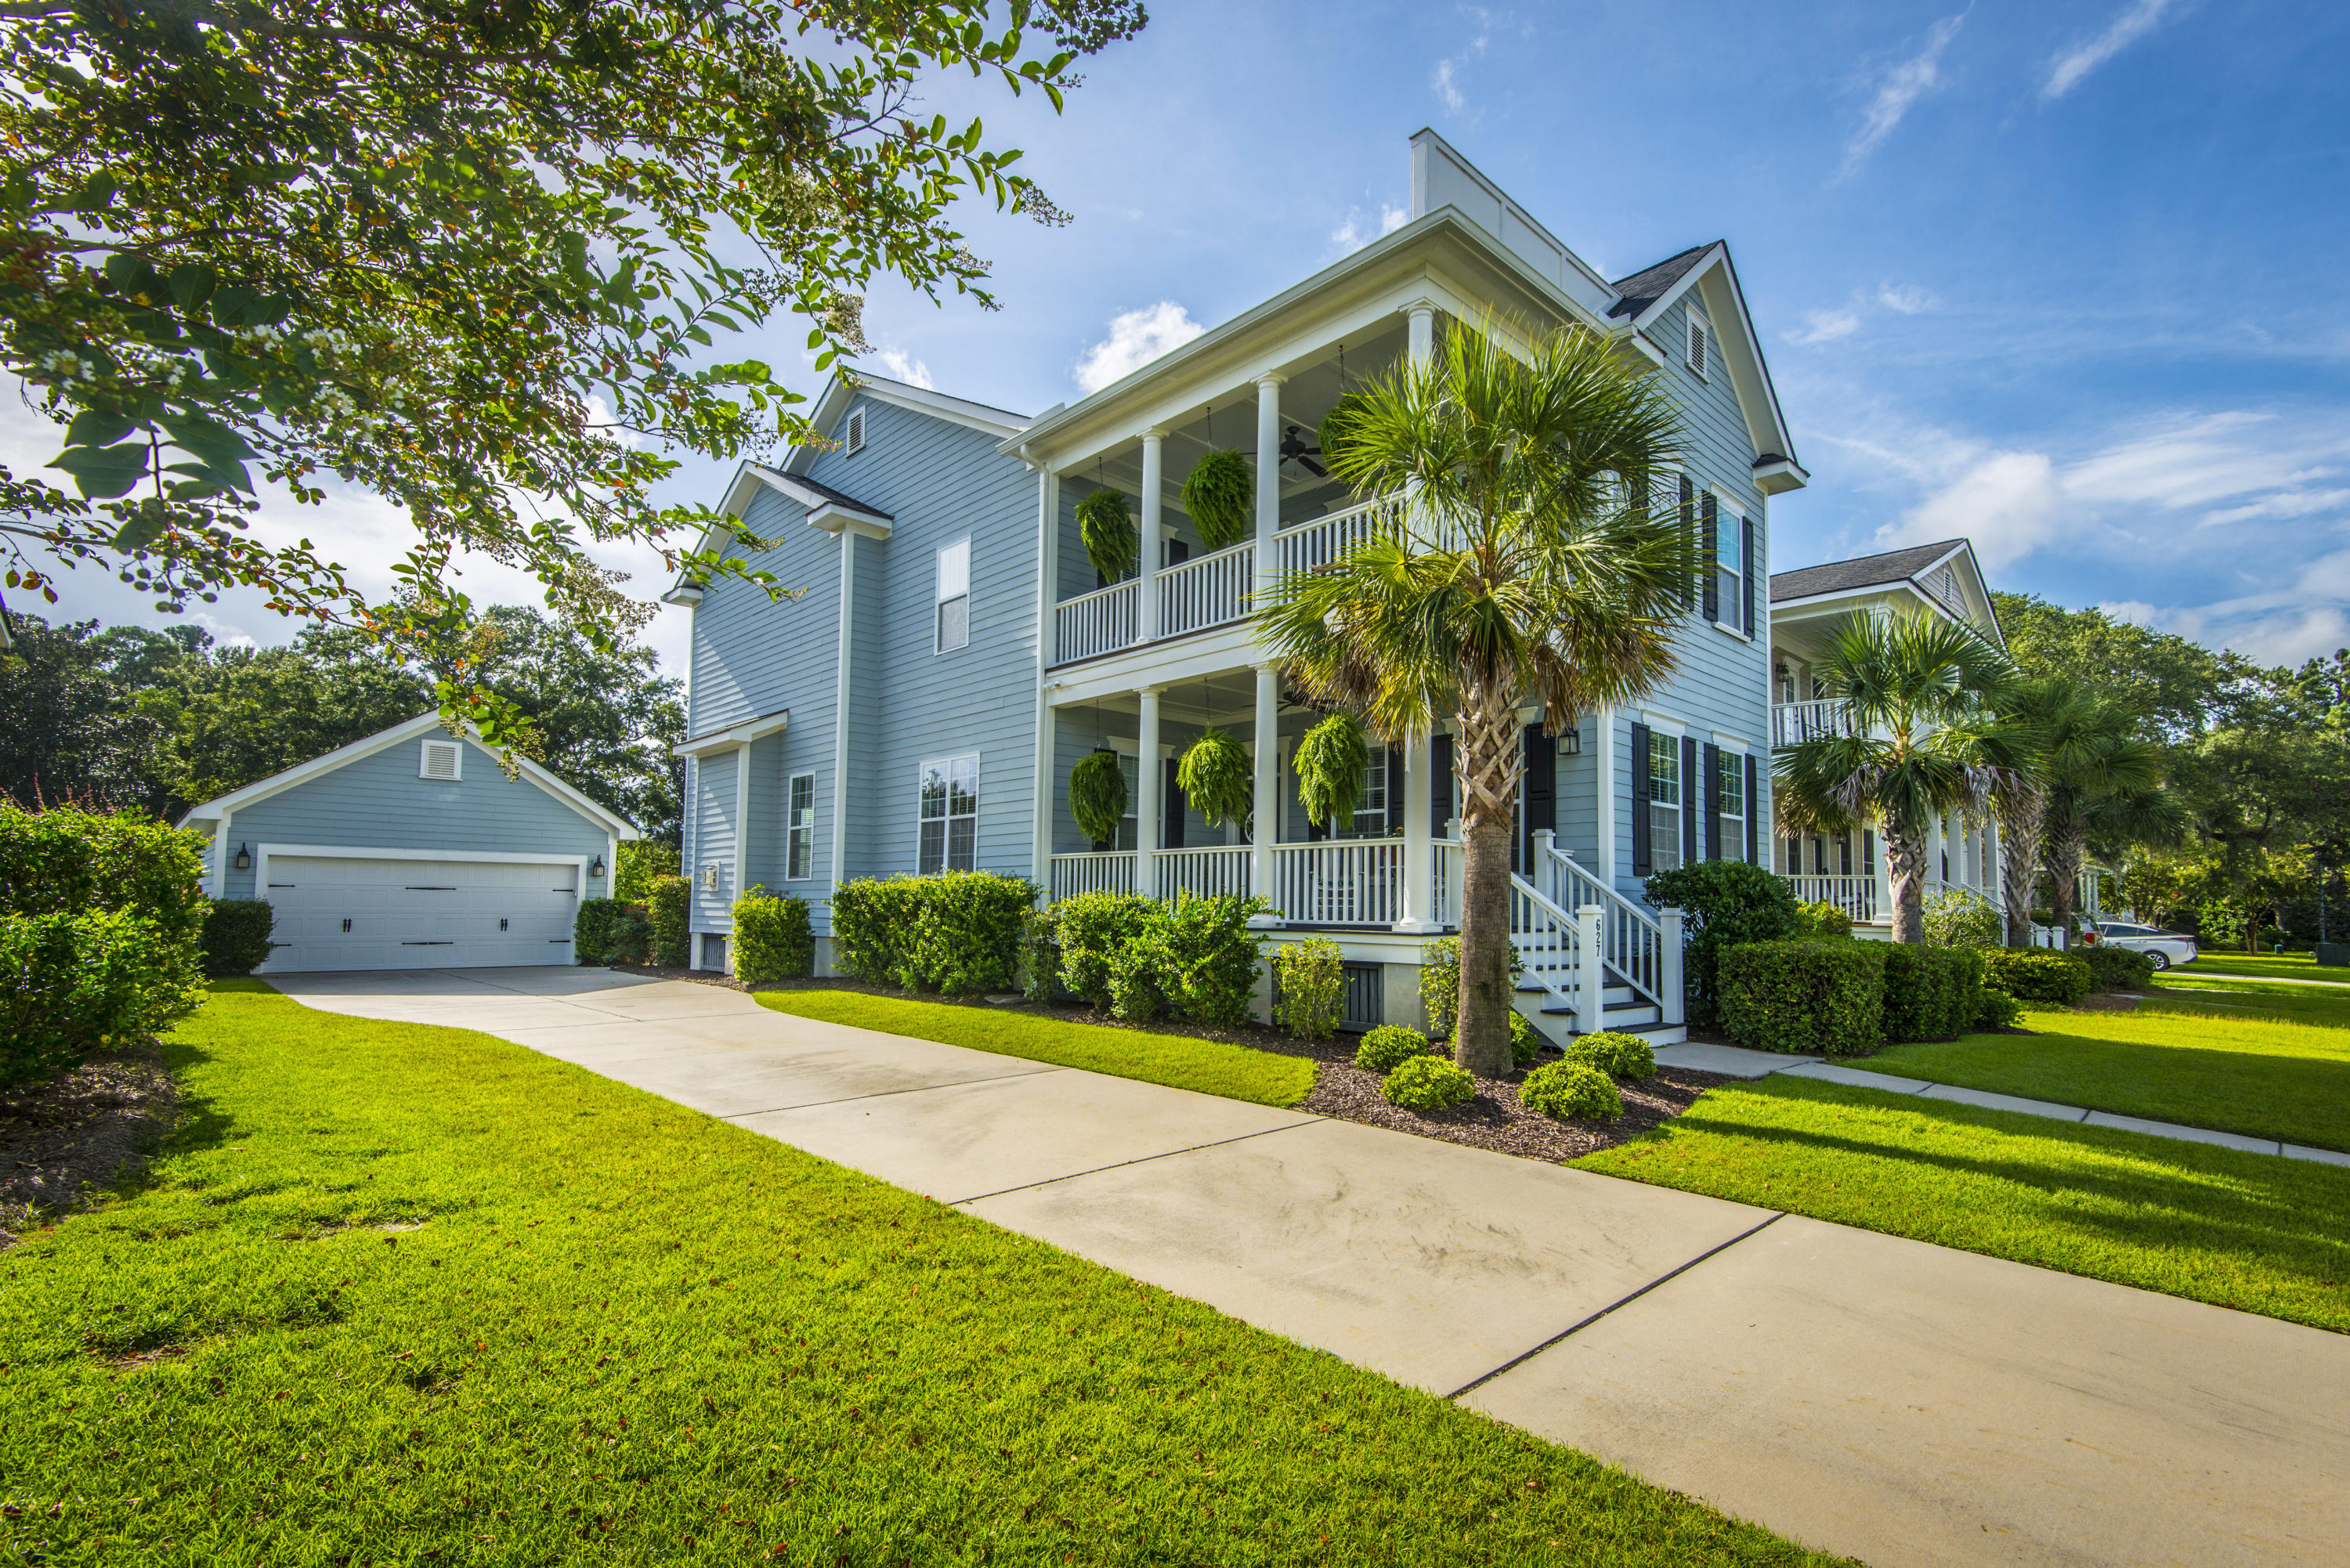 Cloudbreak Court Homes For Sale - 627 Cloudbreak, Charleston, SC - 19